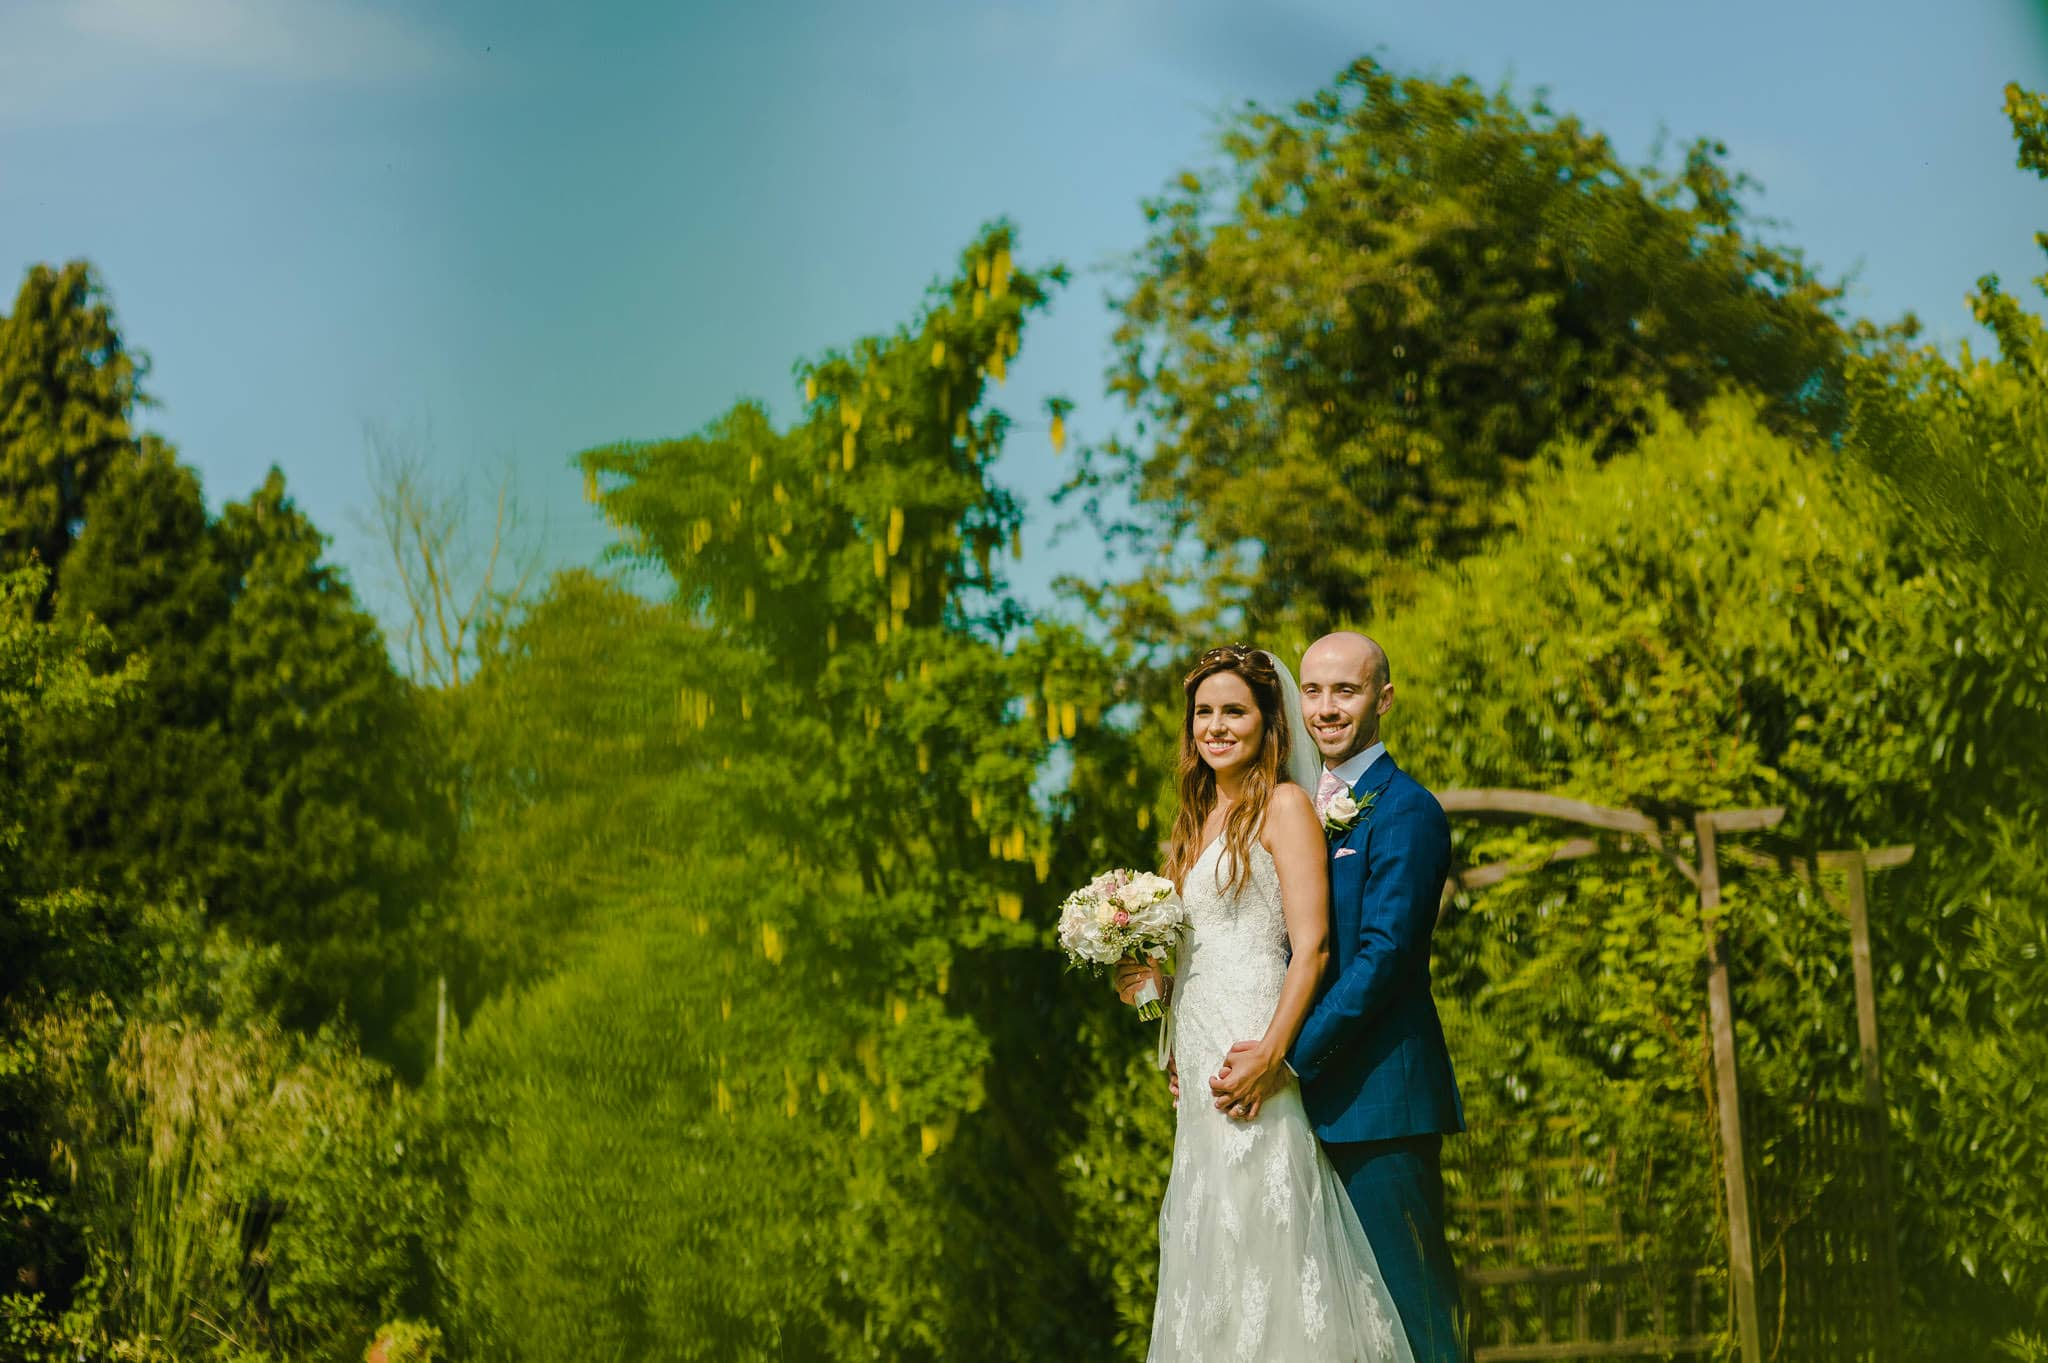 Wedding at Redhouse Barn in Stoke Prior, Worcestershire 114